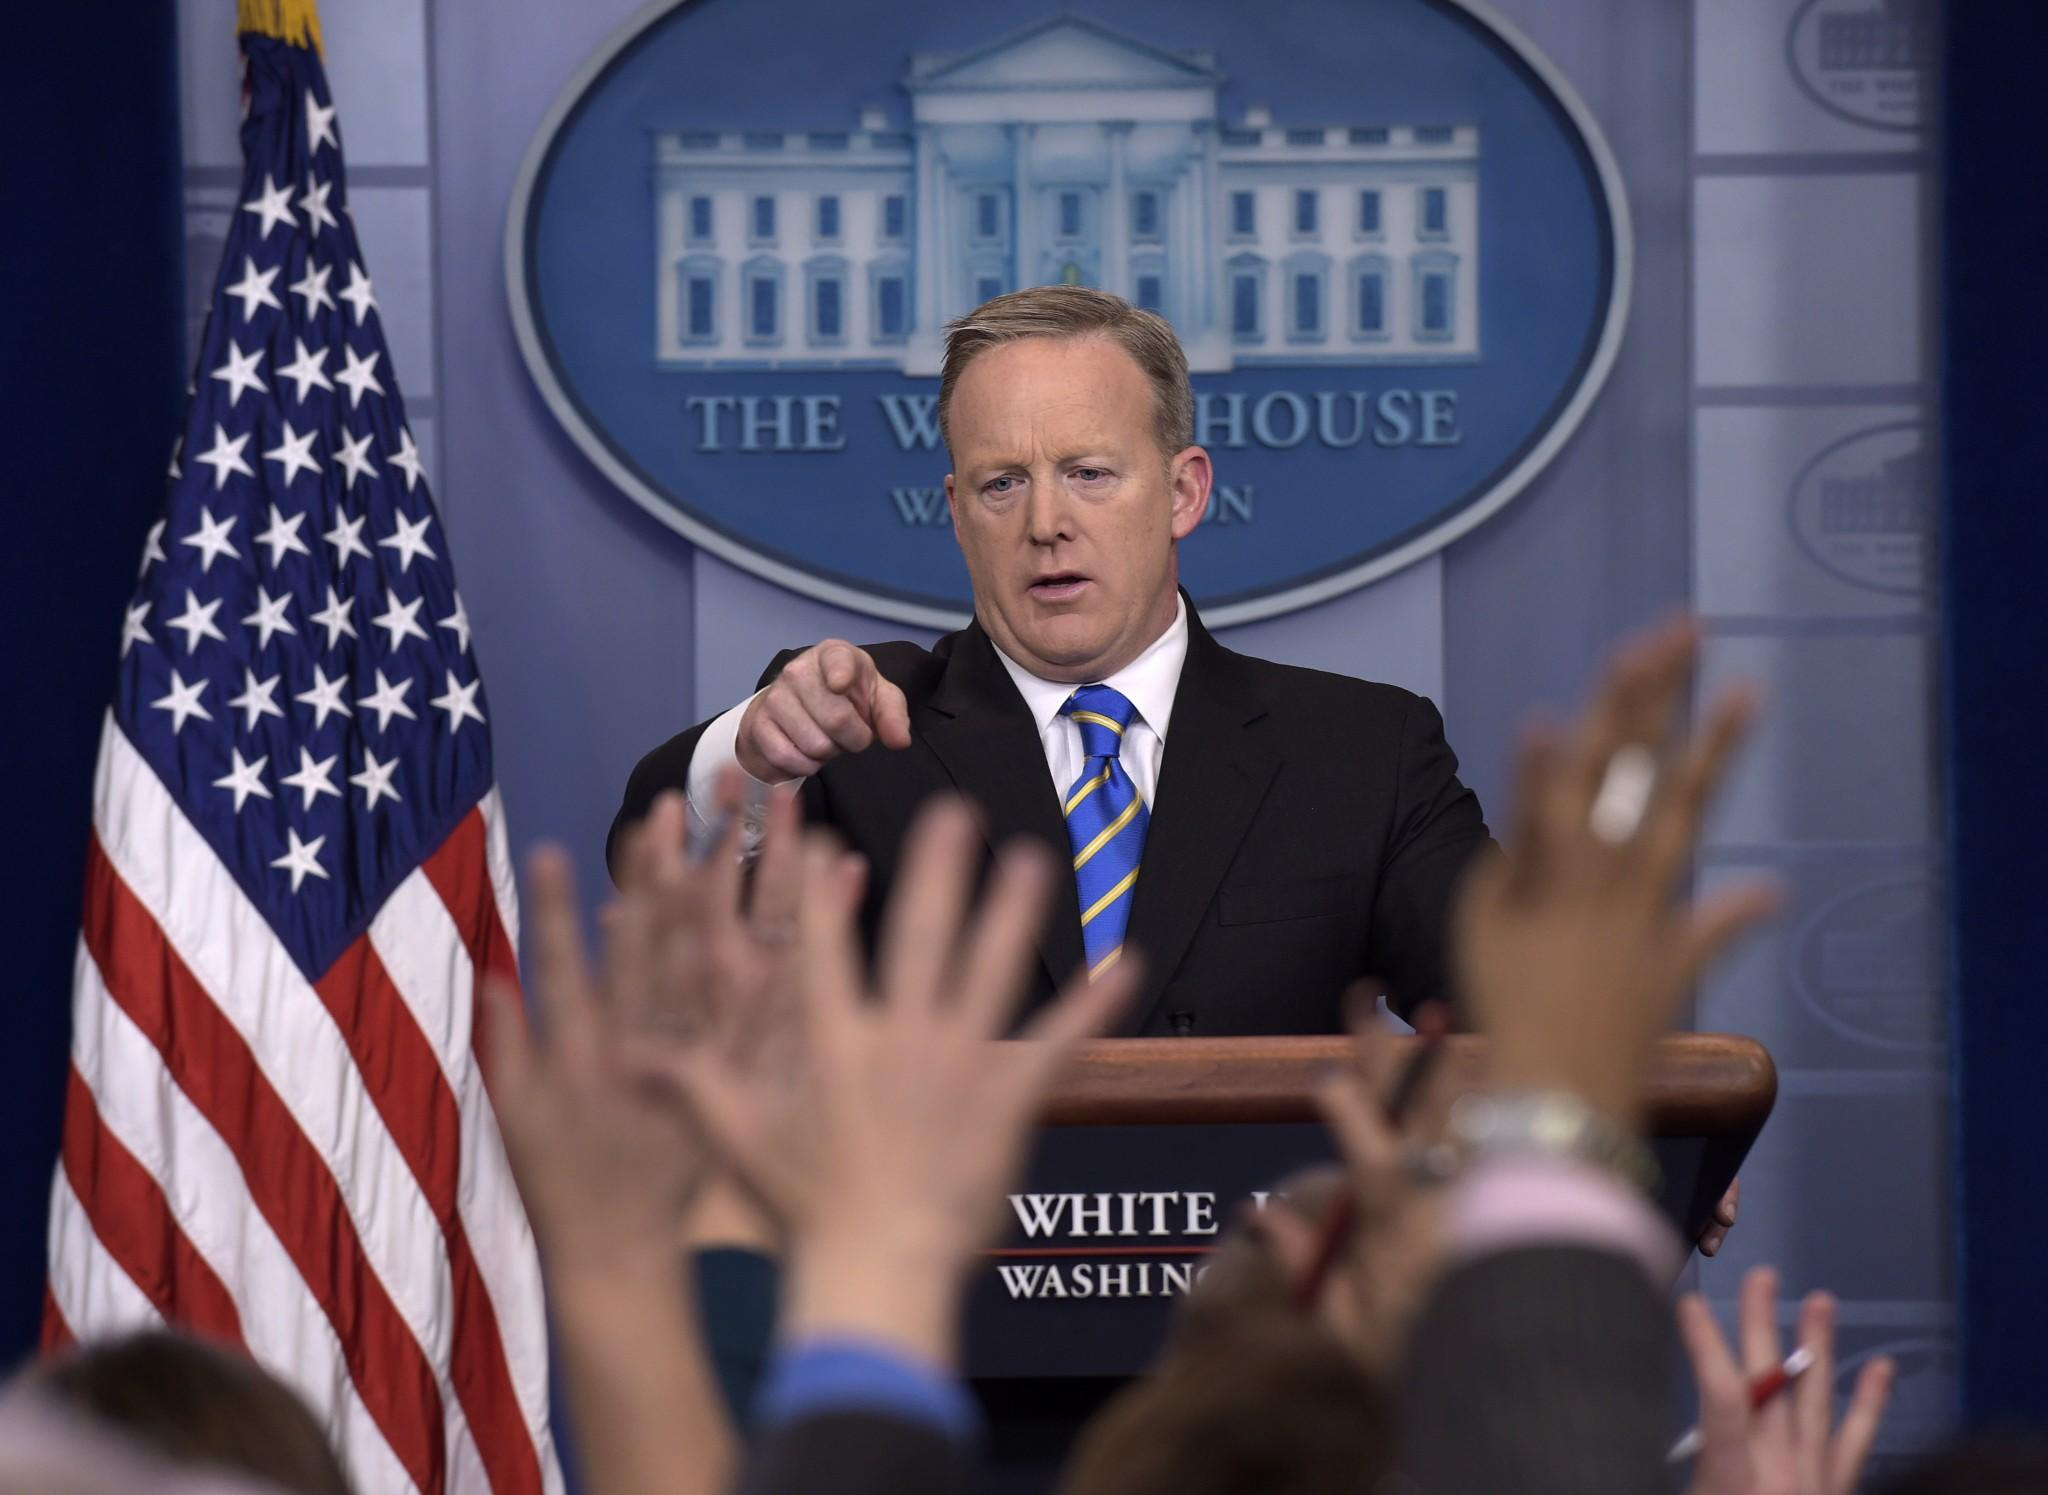 White House press secretary Sean Spicer calls on a reporter during the daily briefing at the White House in Washington, Tuesday, Jan. 24, 2017. Spicer answered questions about the Dakota Pipeline, infrastructure, jobs and other topics. (Photo: Susan Walsh/AP)